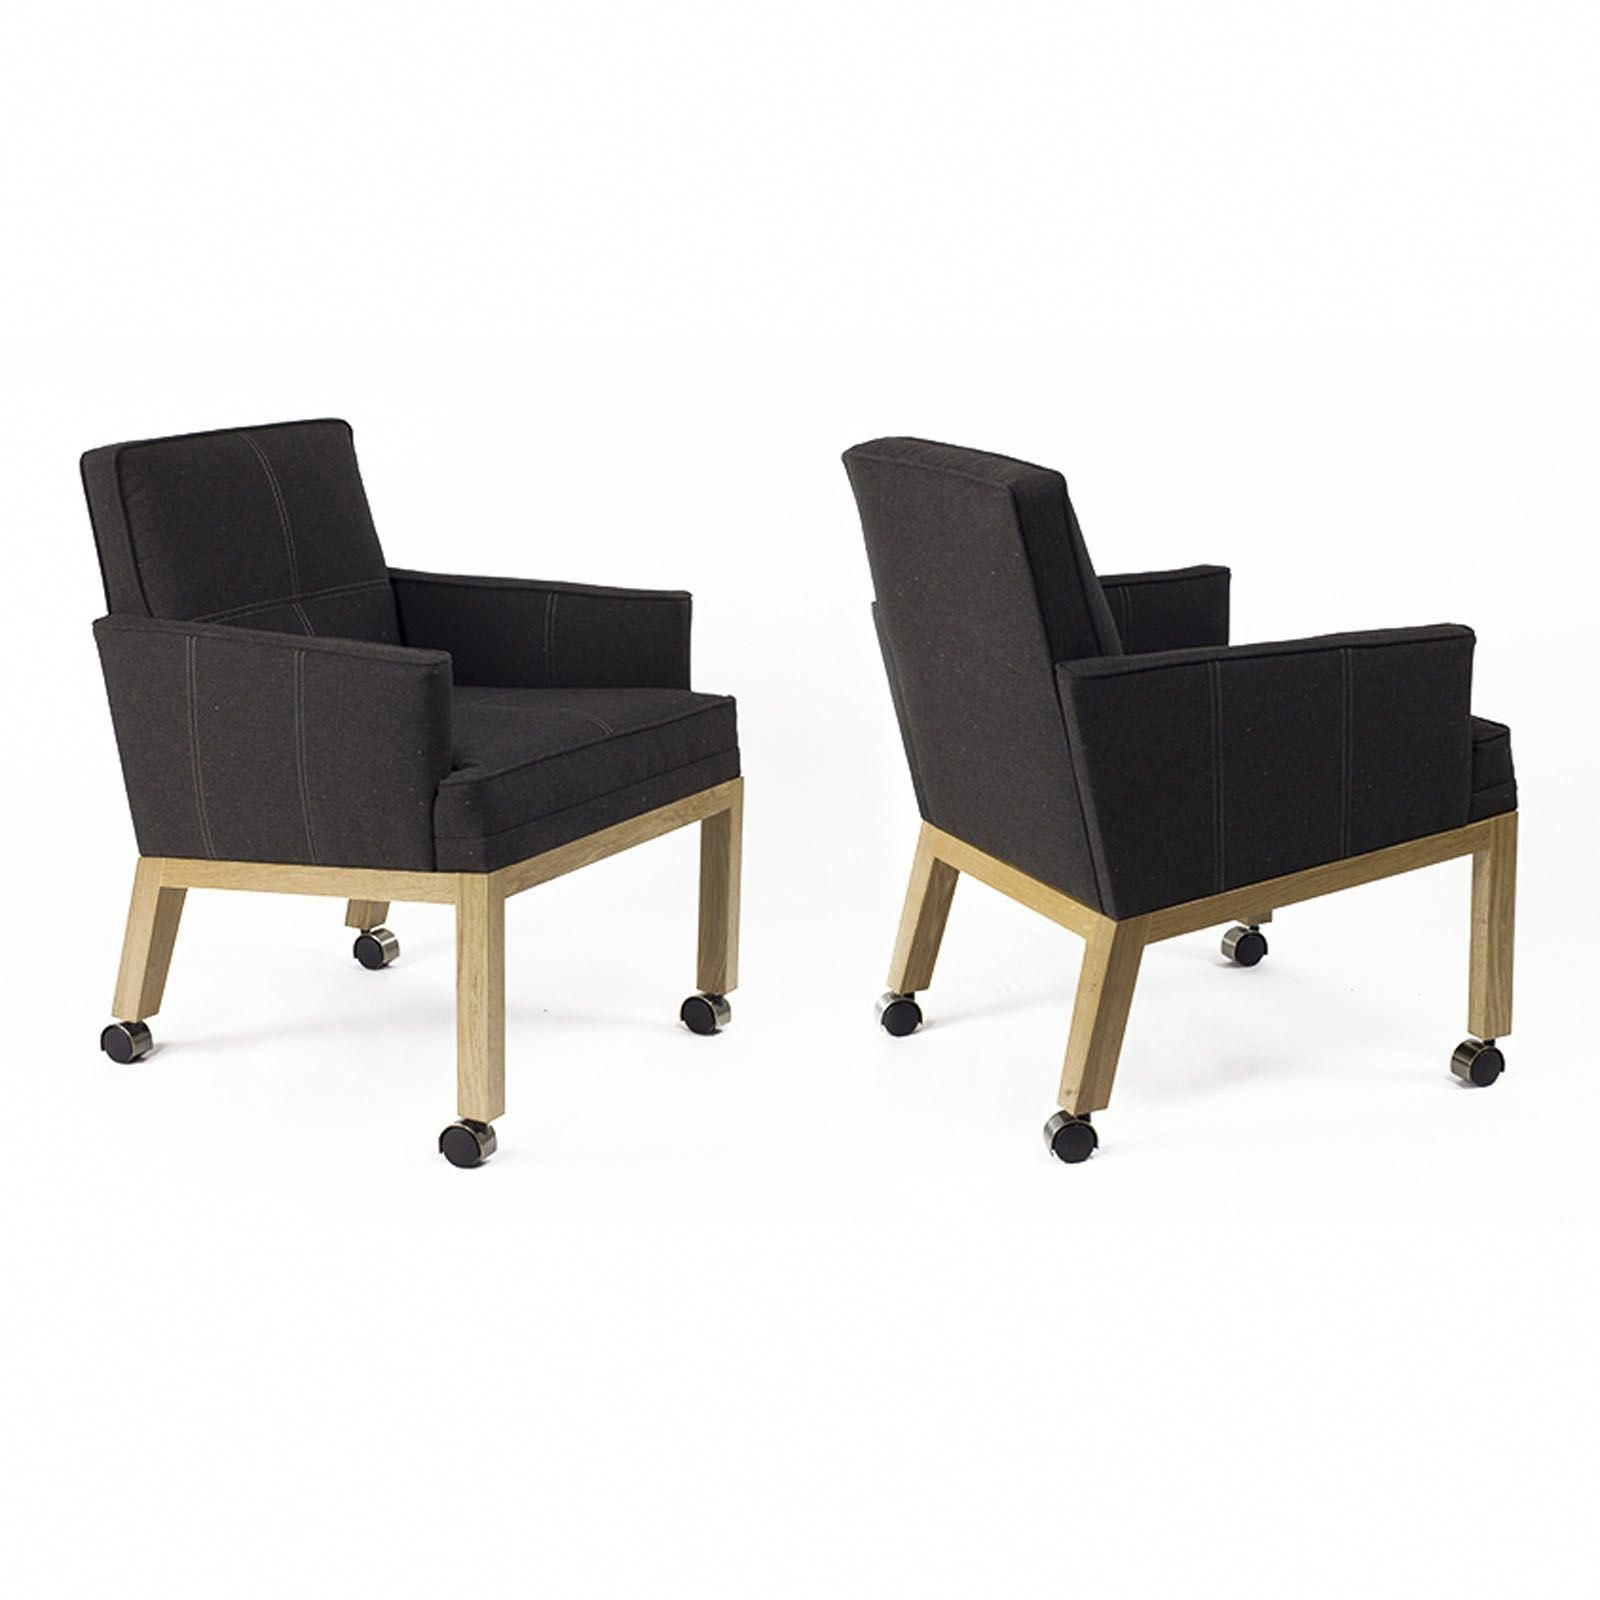 caster game chair c5510 tableandchairs desk chairs chair rh pinterest com